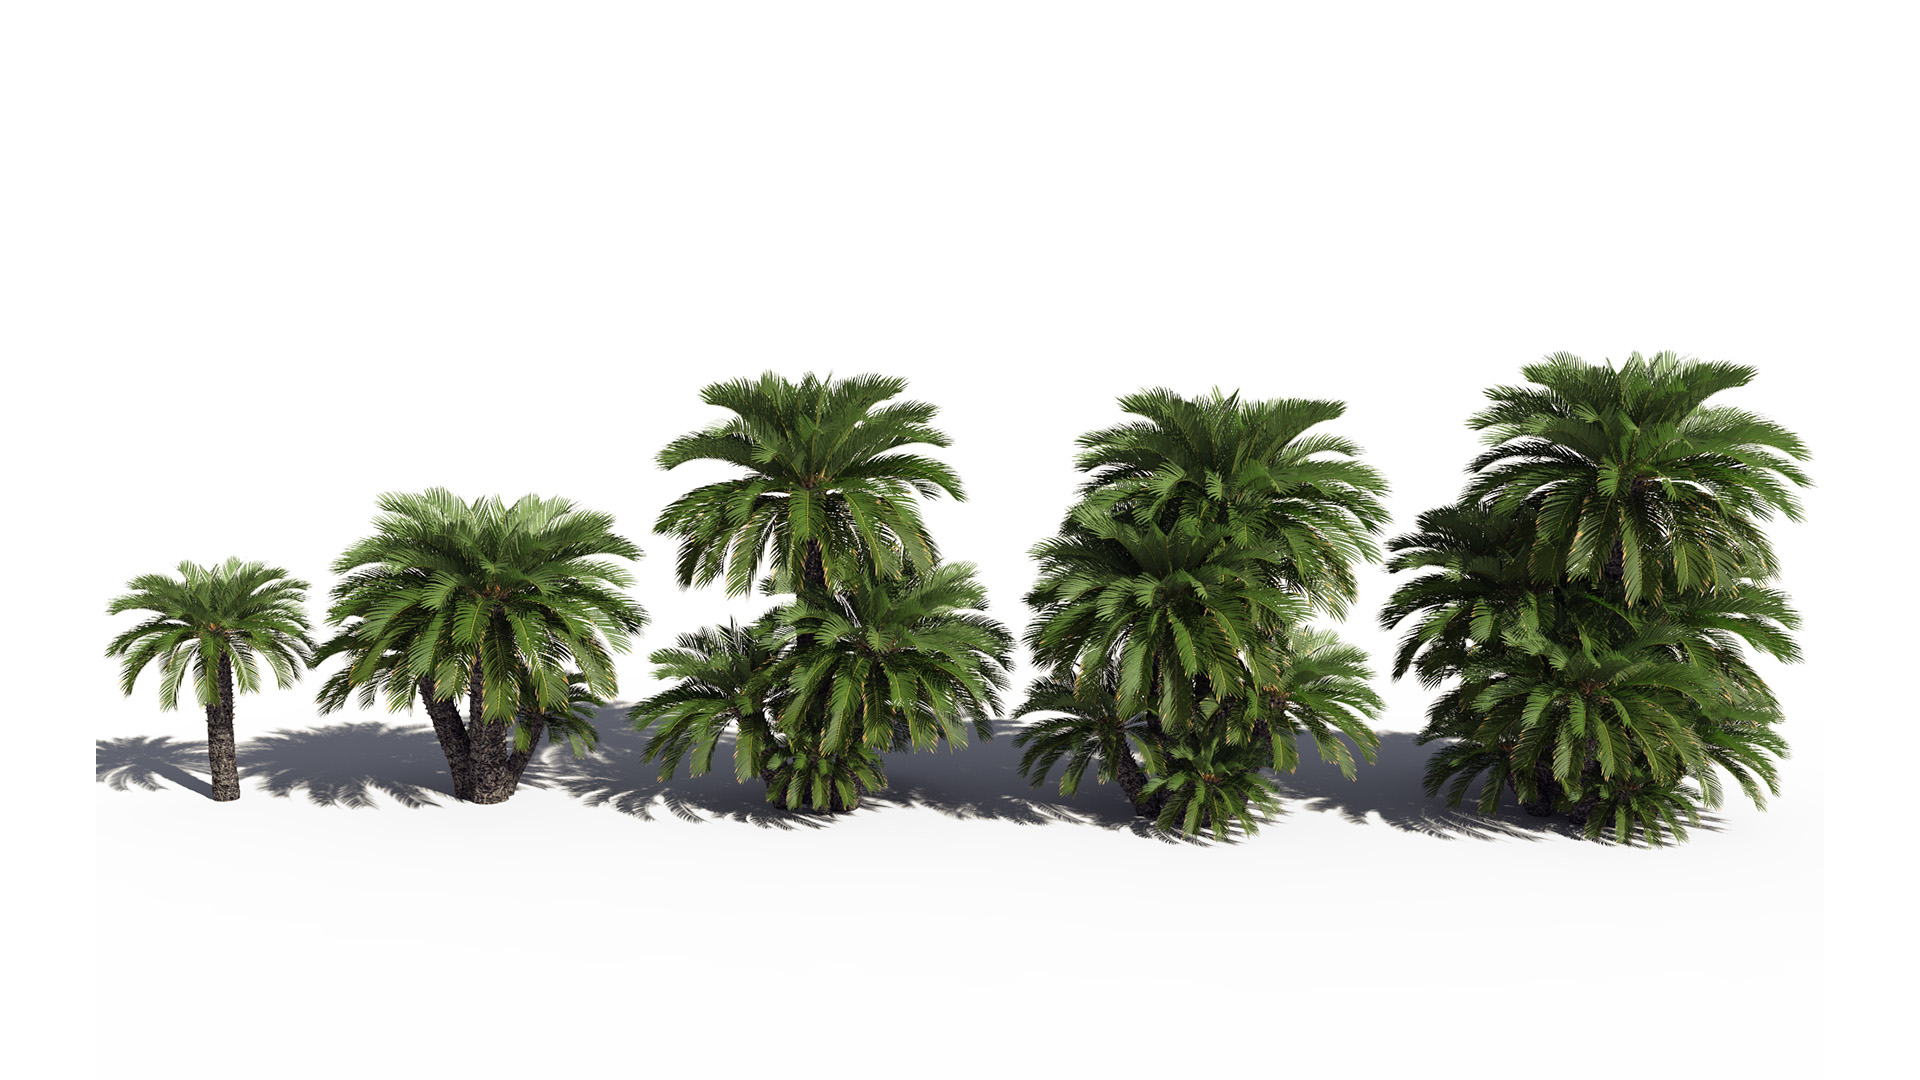 3D model of the Japanese sago palm Cycas revoluta different presets